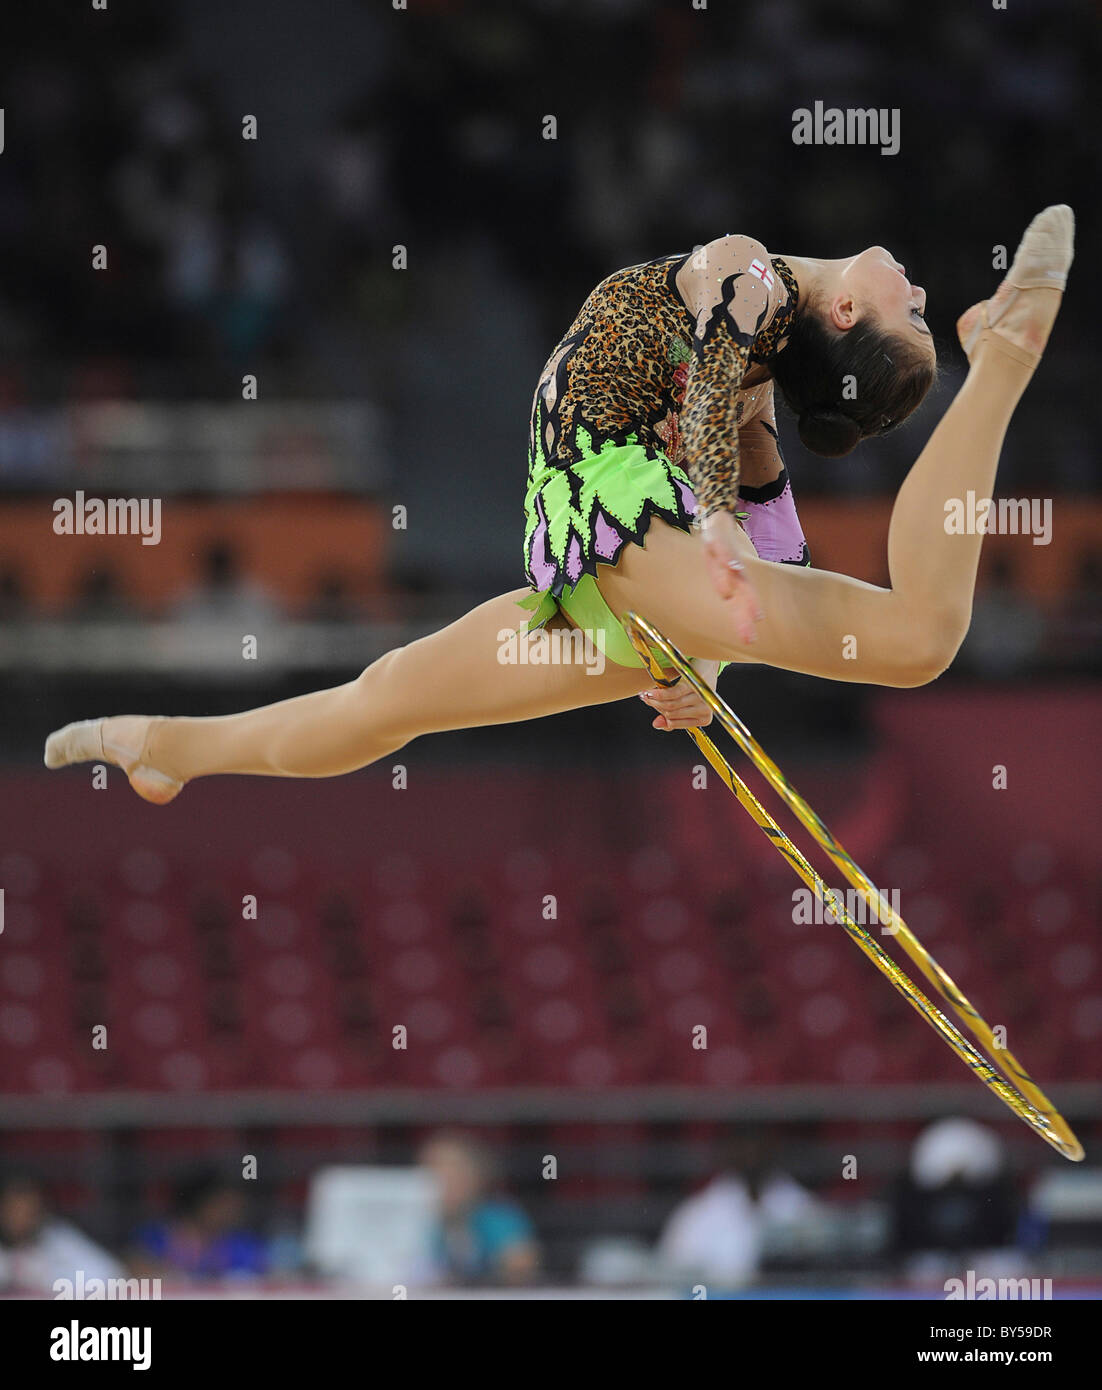 India Delhi 2010 XIX Commonwealth Games Rhythmic gymnastics. Gymnast and hoop. - Stock Image